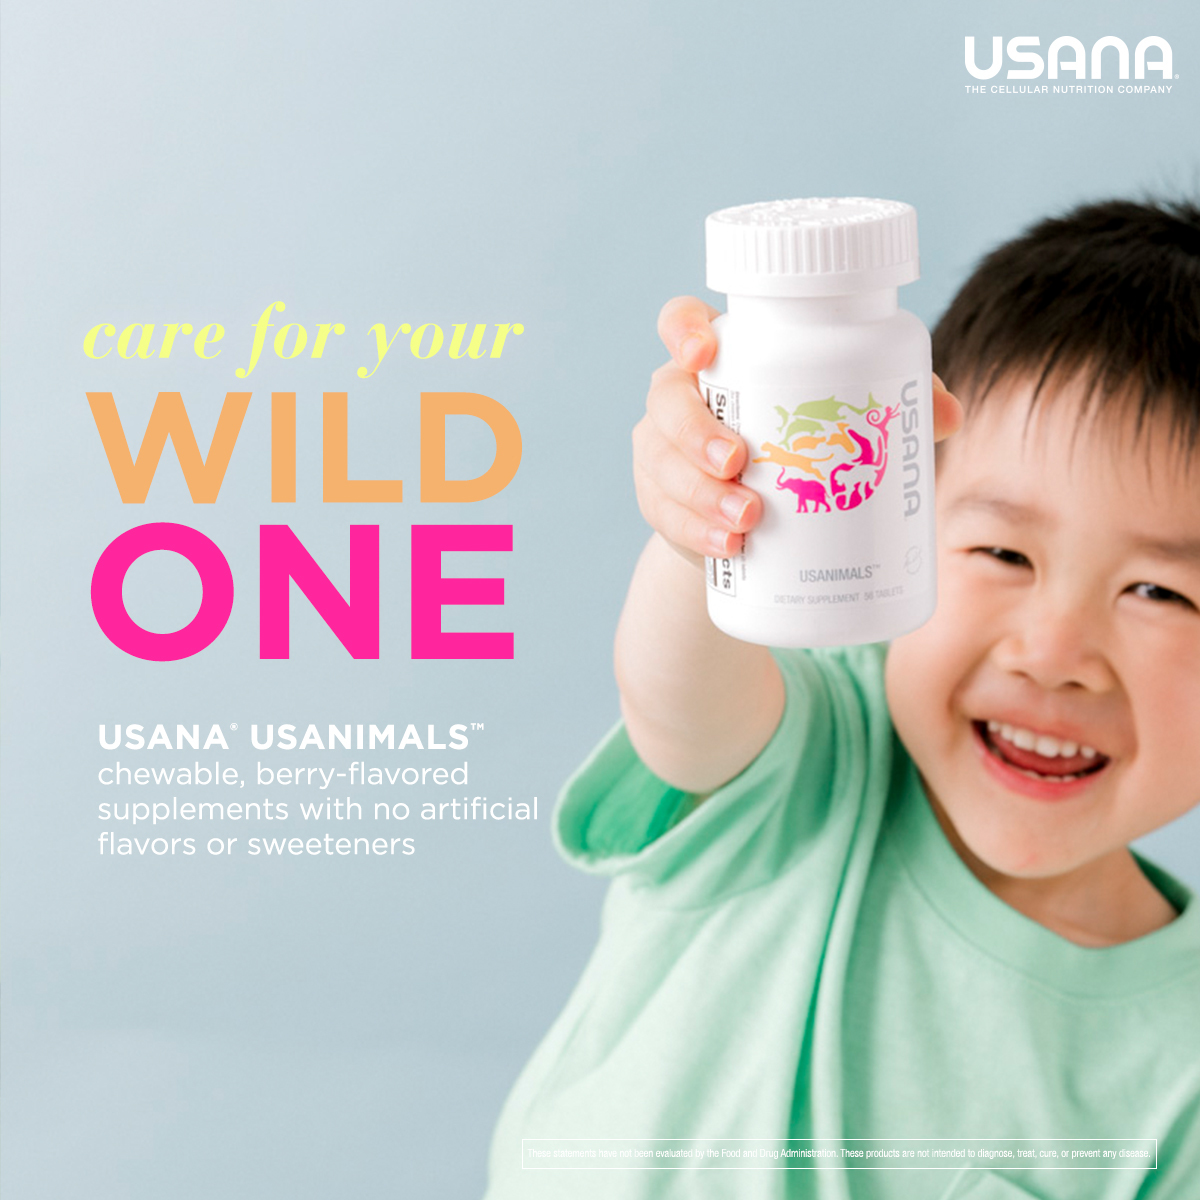 Usanimals: Care for Your Wild One Social Shareable